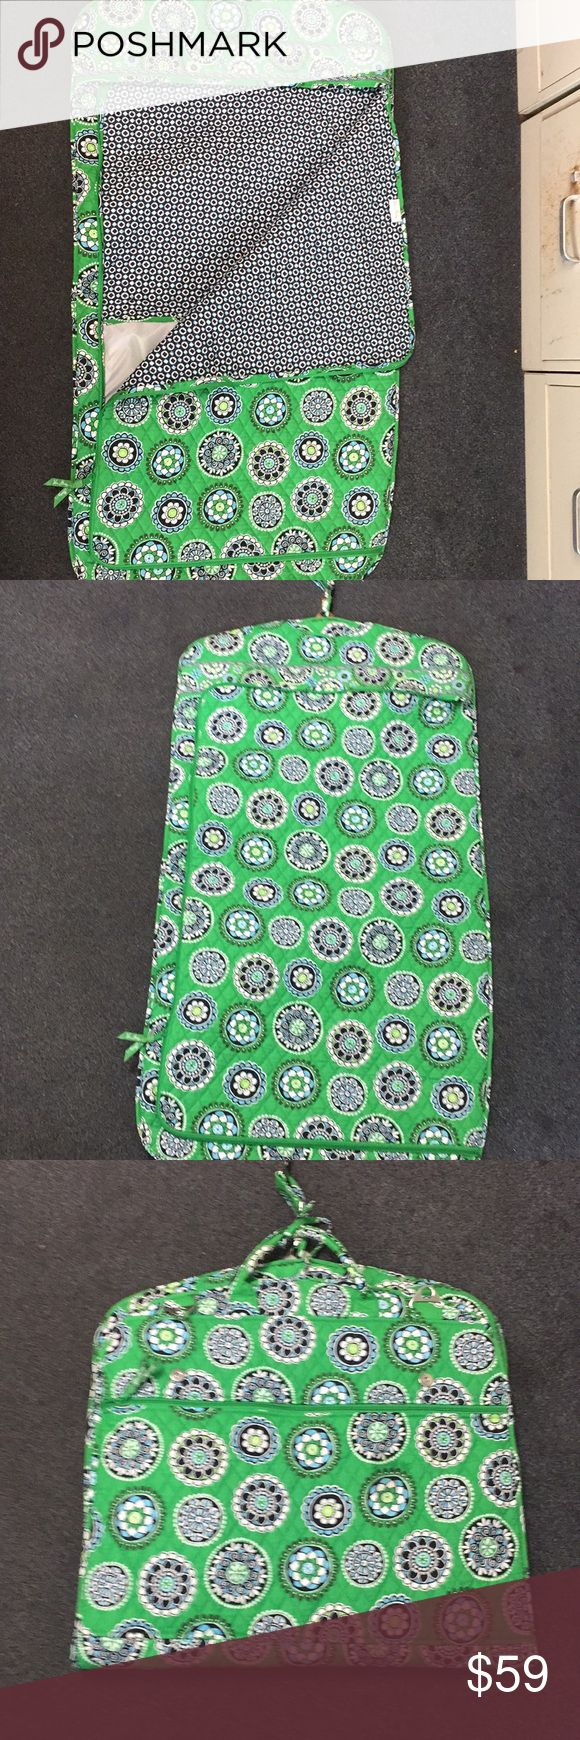 Vera Bradley suit bag Green printed. Multiple compartment excellent condition lightweight Vera Bradley Bags Travel Bags